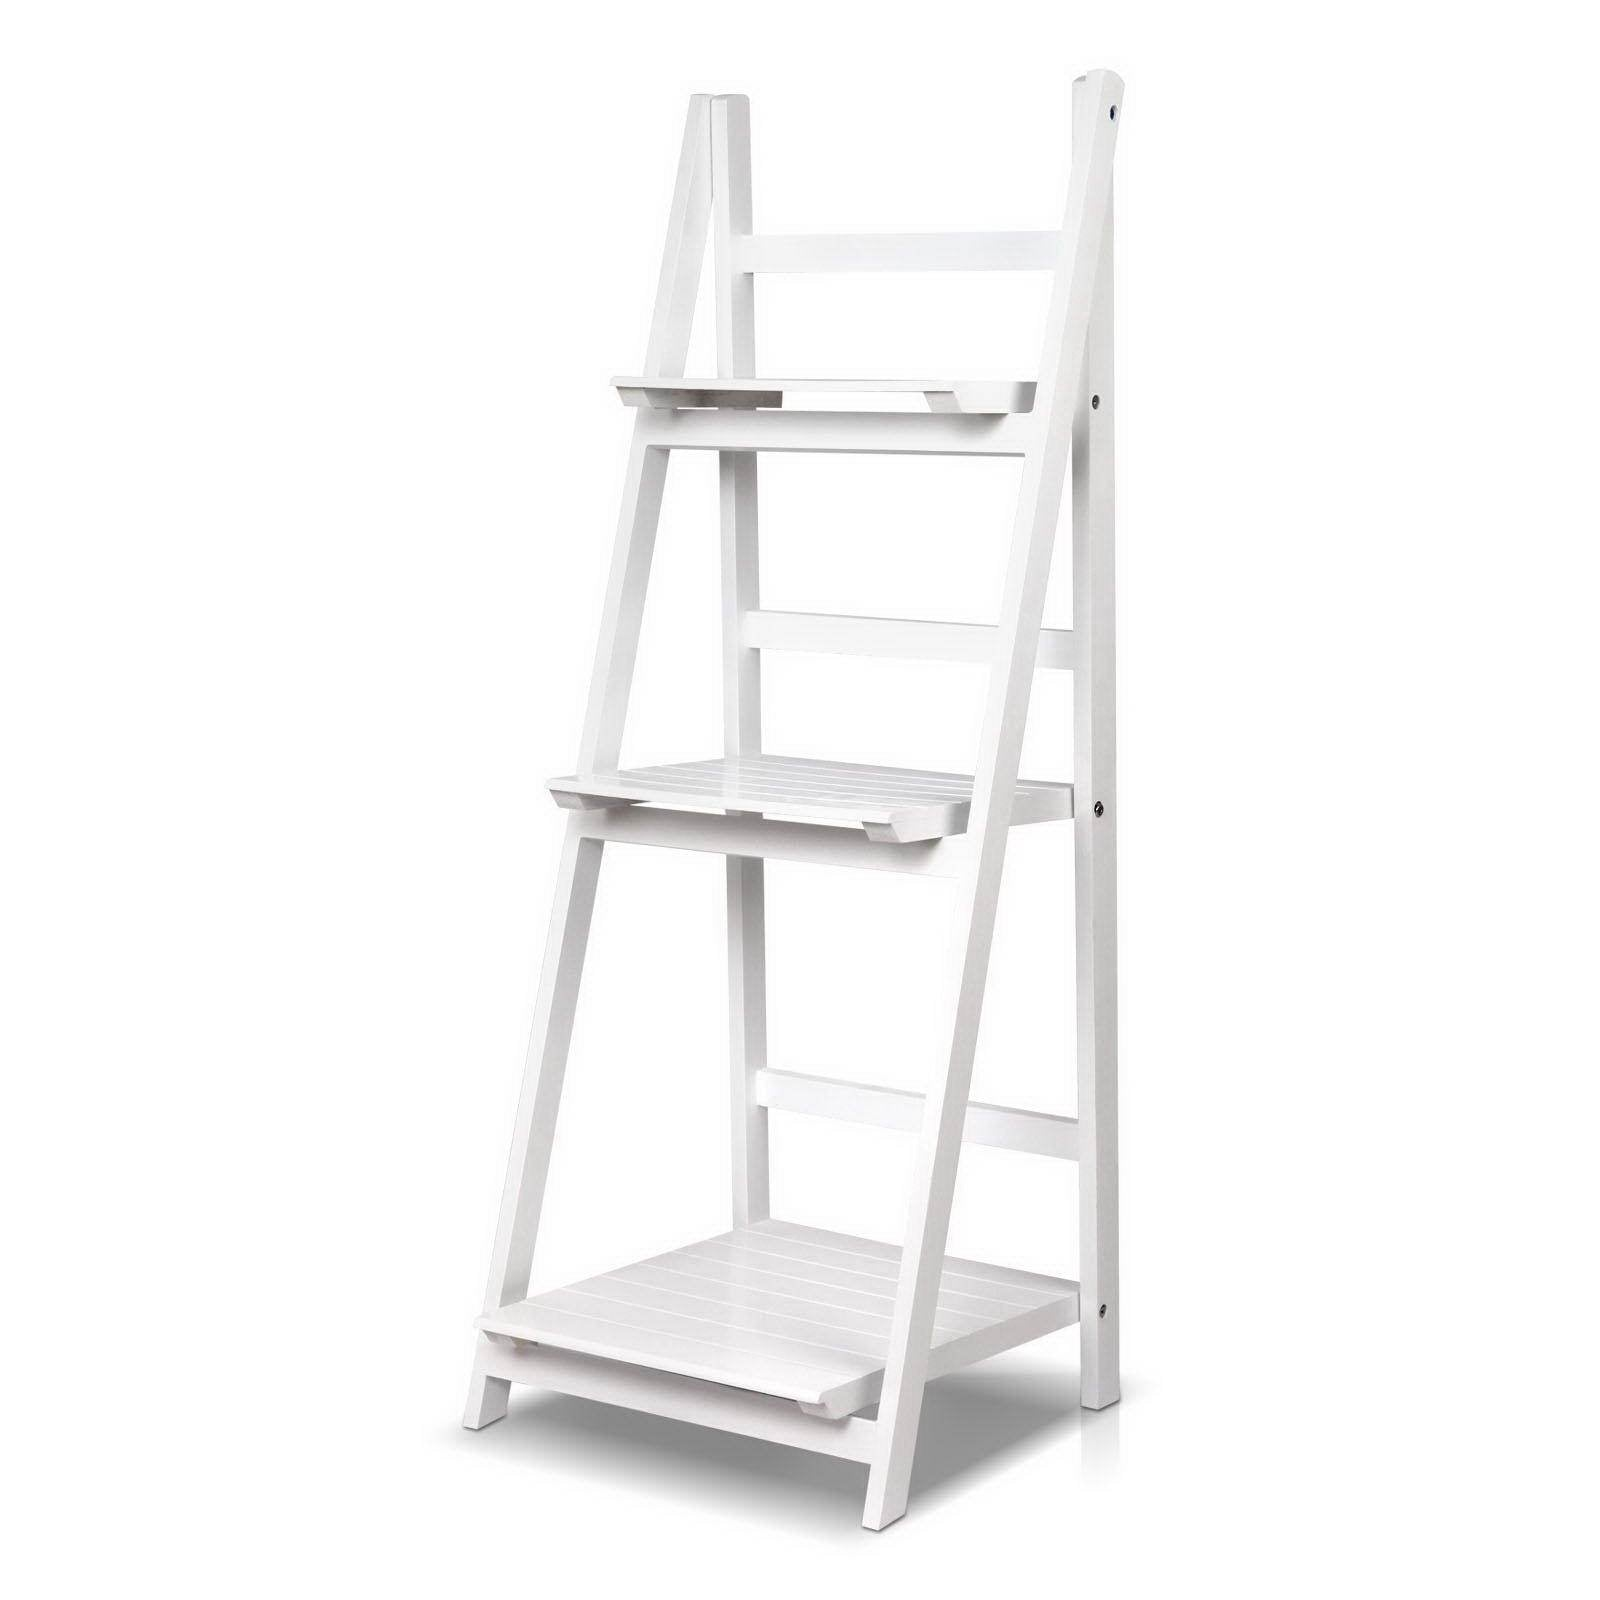 Artiss Display Shelf 3 Tier Wooden Ladder Stand Storage Book Shelves Rack White - Evopia